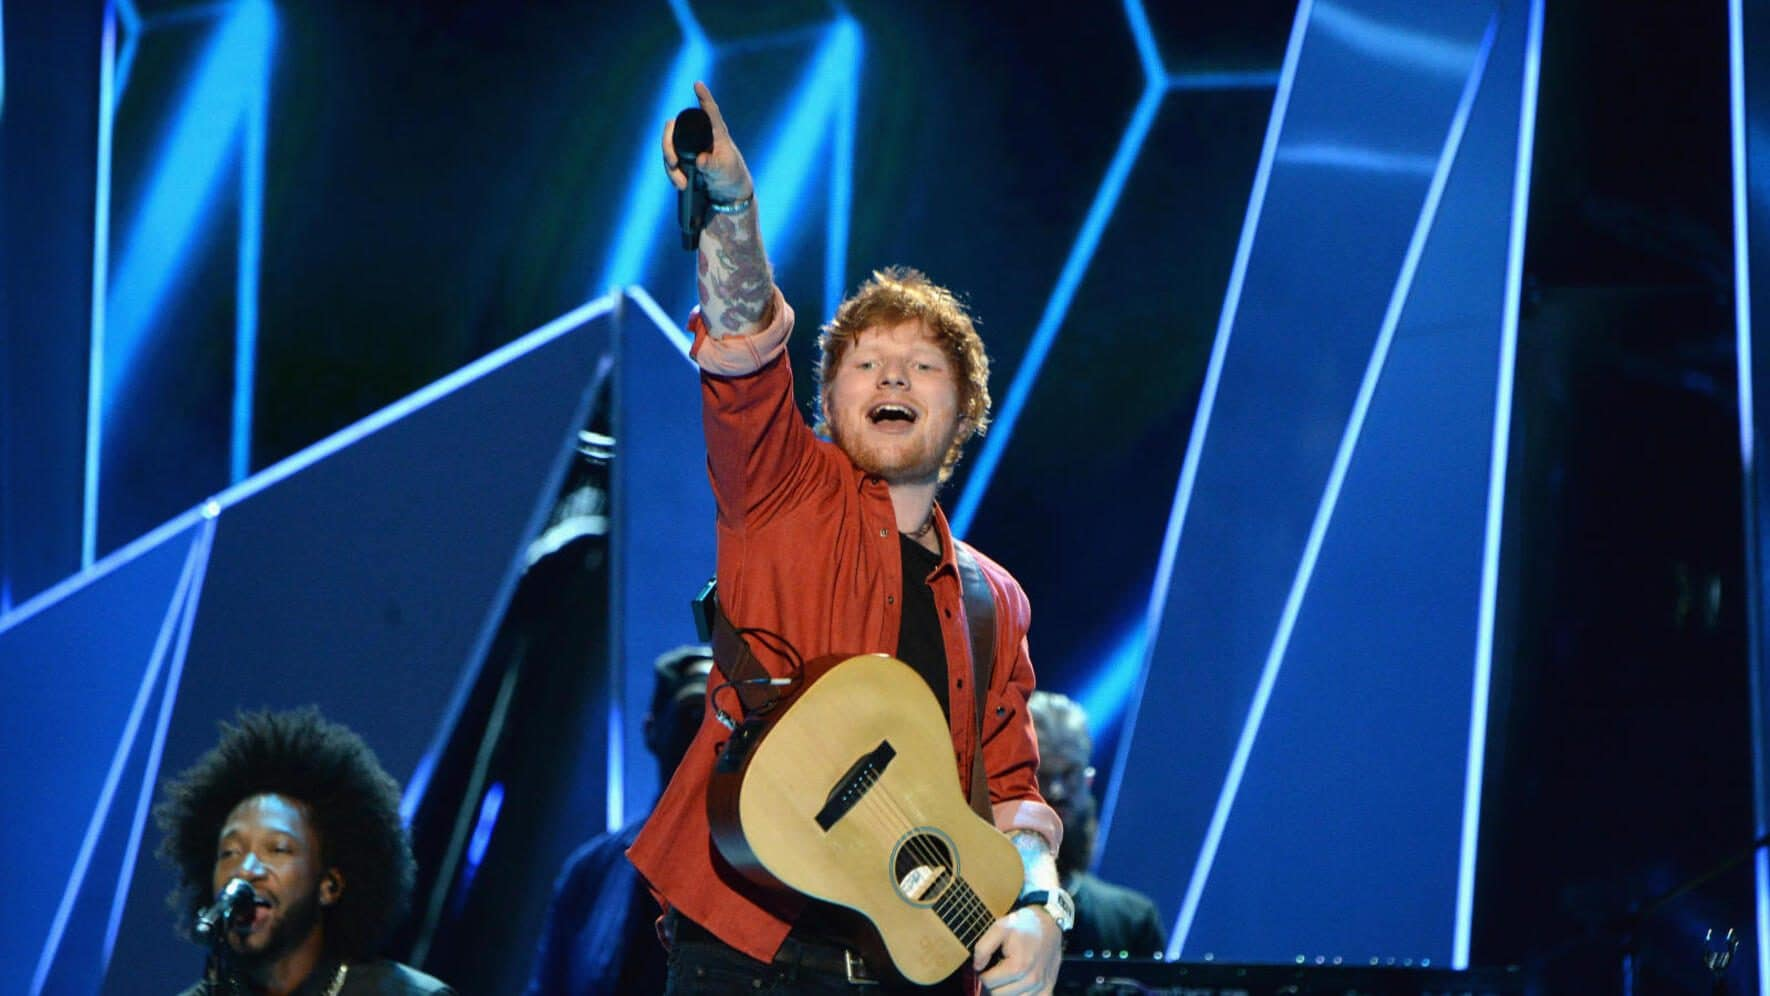 INGLEWOOD, CA - AUGUST 27: Ed Sheeran performs onstage during the 2017 MTV Video Music Awards at The Forum on August 27, 2017 in Inglewood, California. (Photo by Kevin Mazur/WireImage)